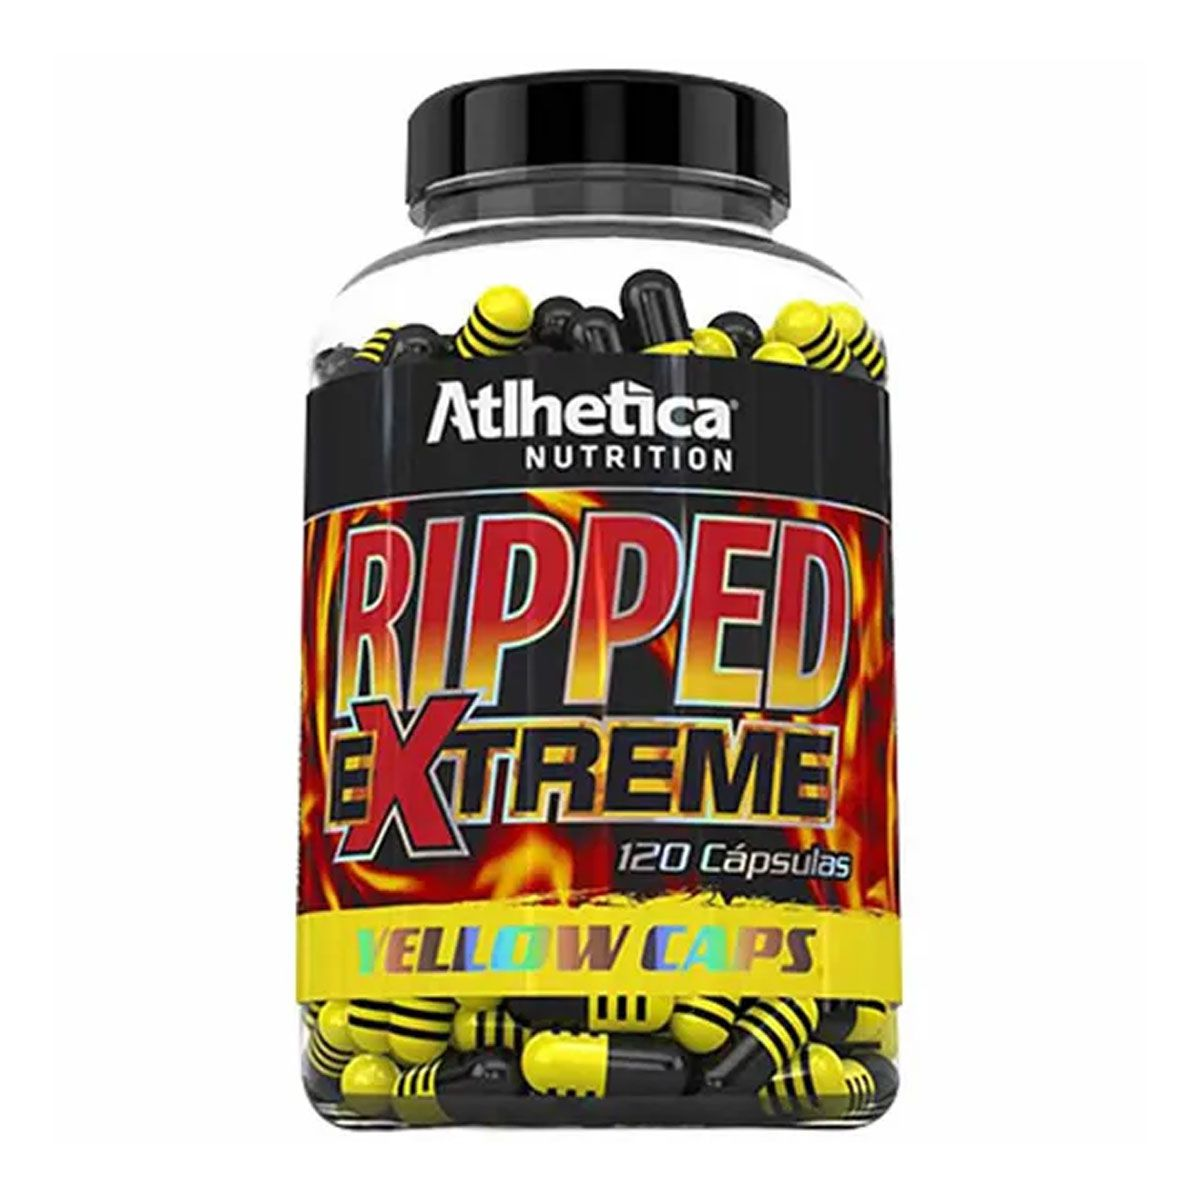 Ripped Extreme Yellow 120 Cápsulas - Atlhetica Nutrition